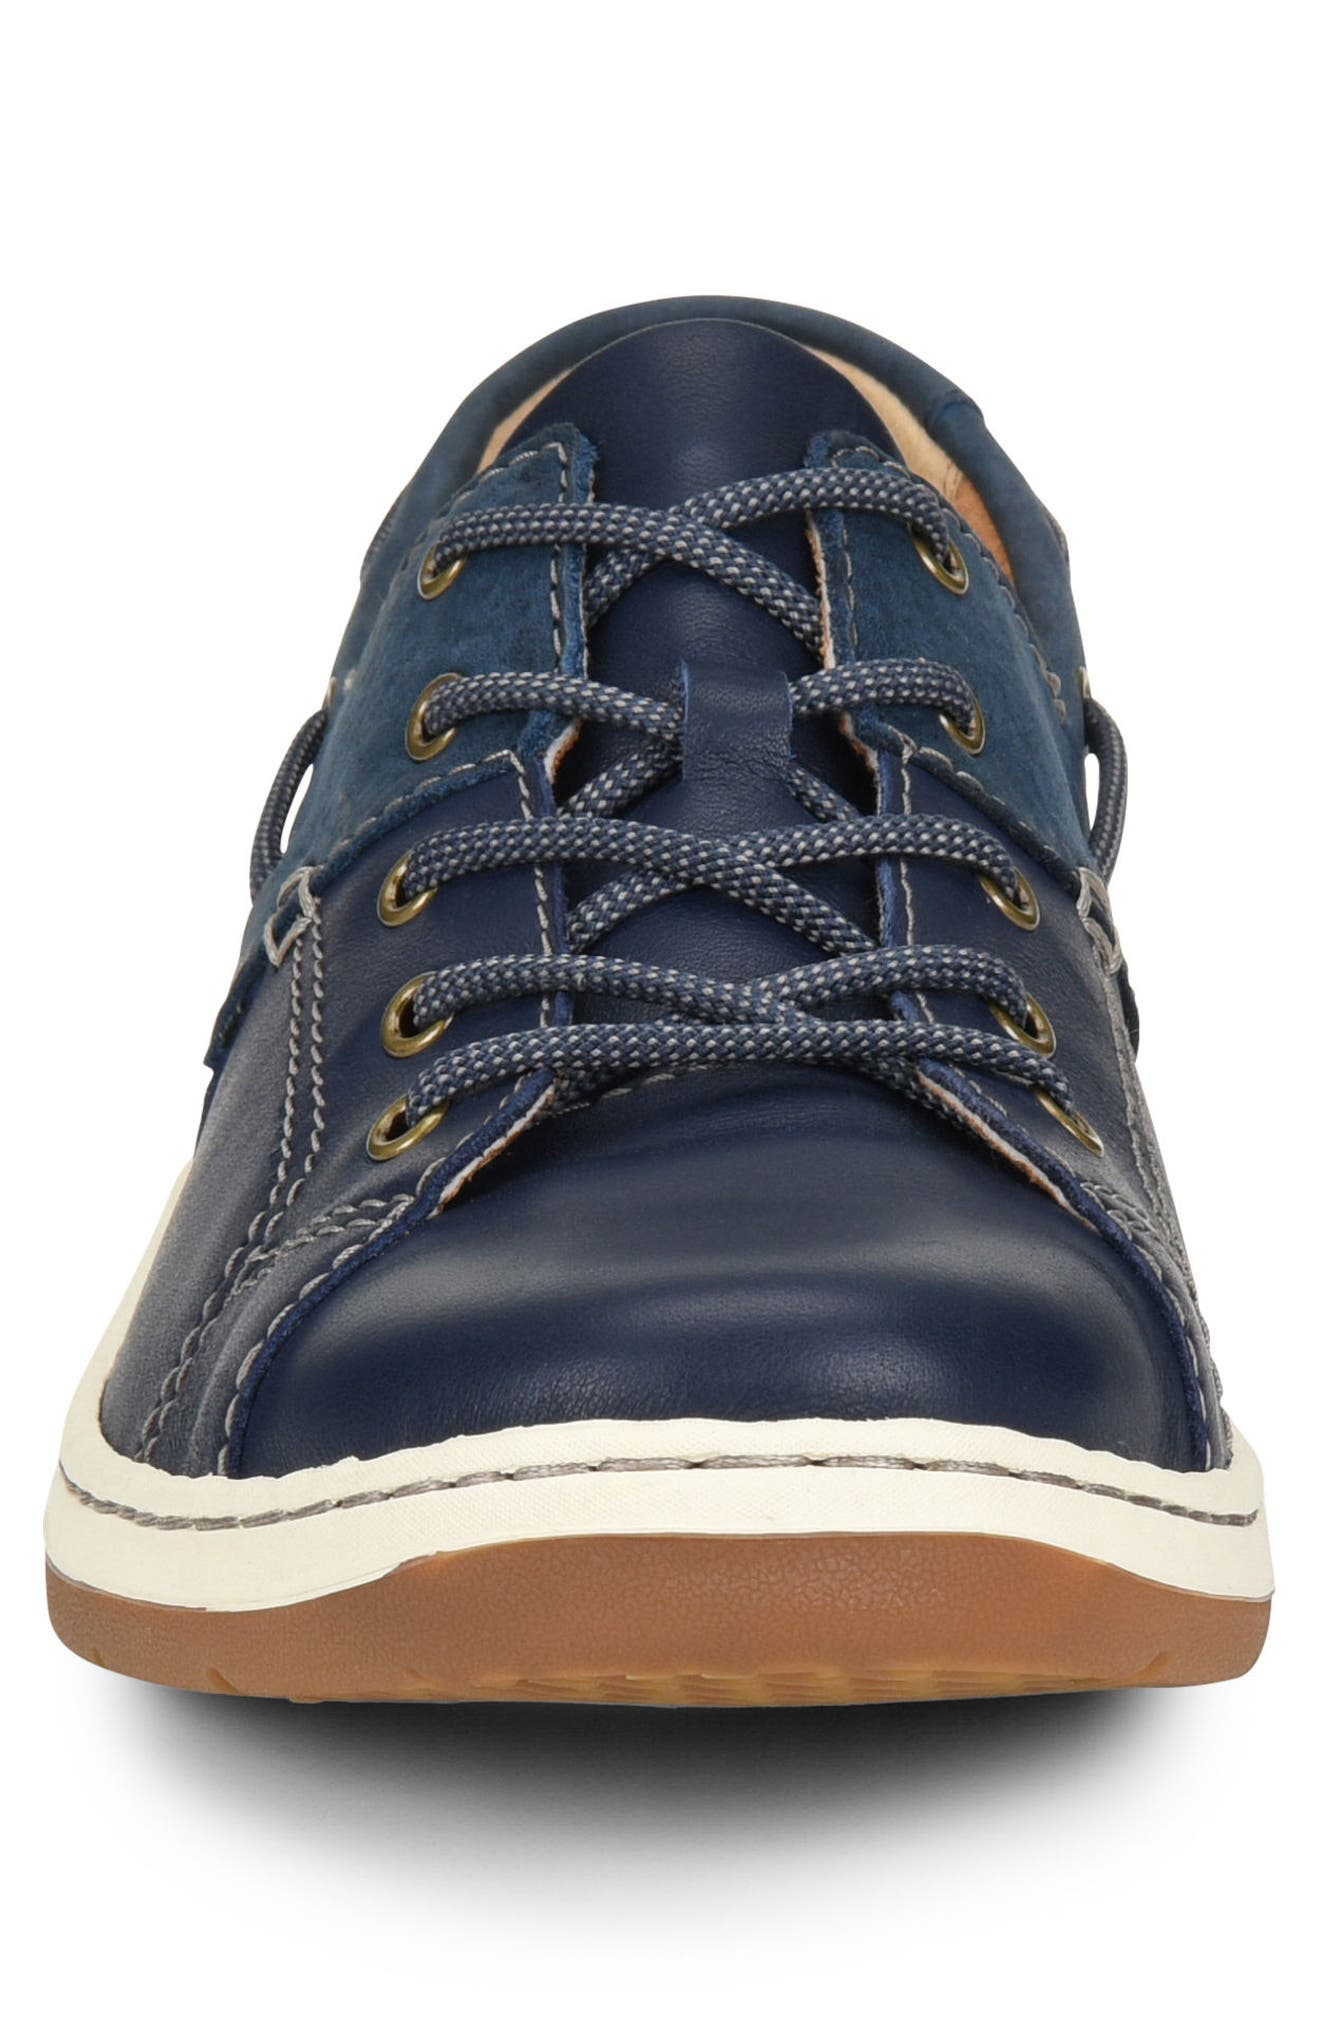 Marius Boat Shoe Sneaker,                             Alternate thumbnail 4, color,                             Navy Leather